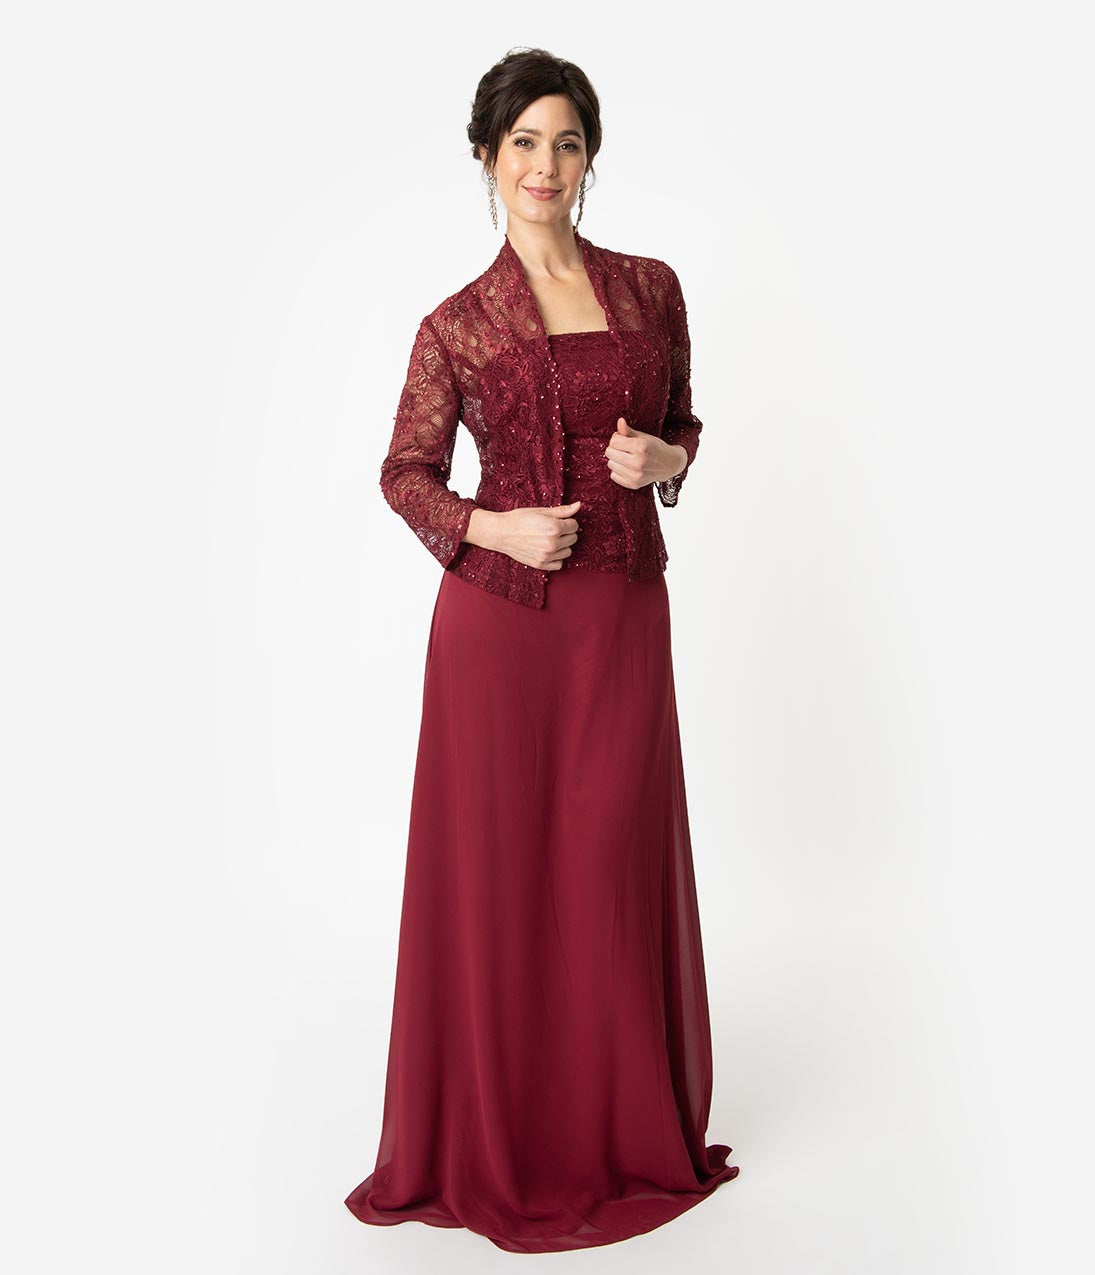 1940s Evening, Prom, Party, Formal, Ball Gowns Burgundy Red Lace Chiffon Sleeveless Embellished Long Dress  Jacket Set $168.00 AT vintagedancer.com